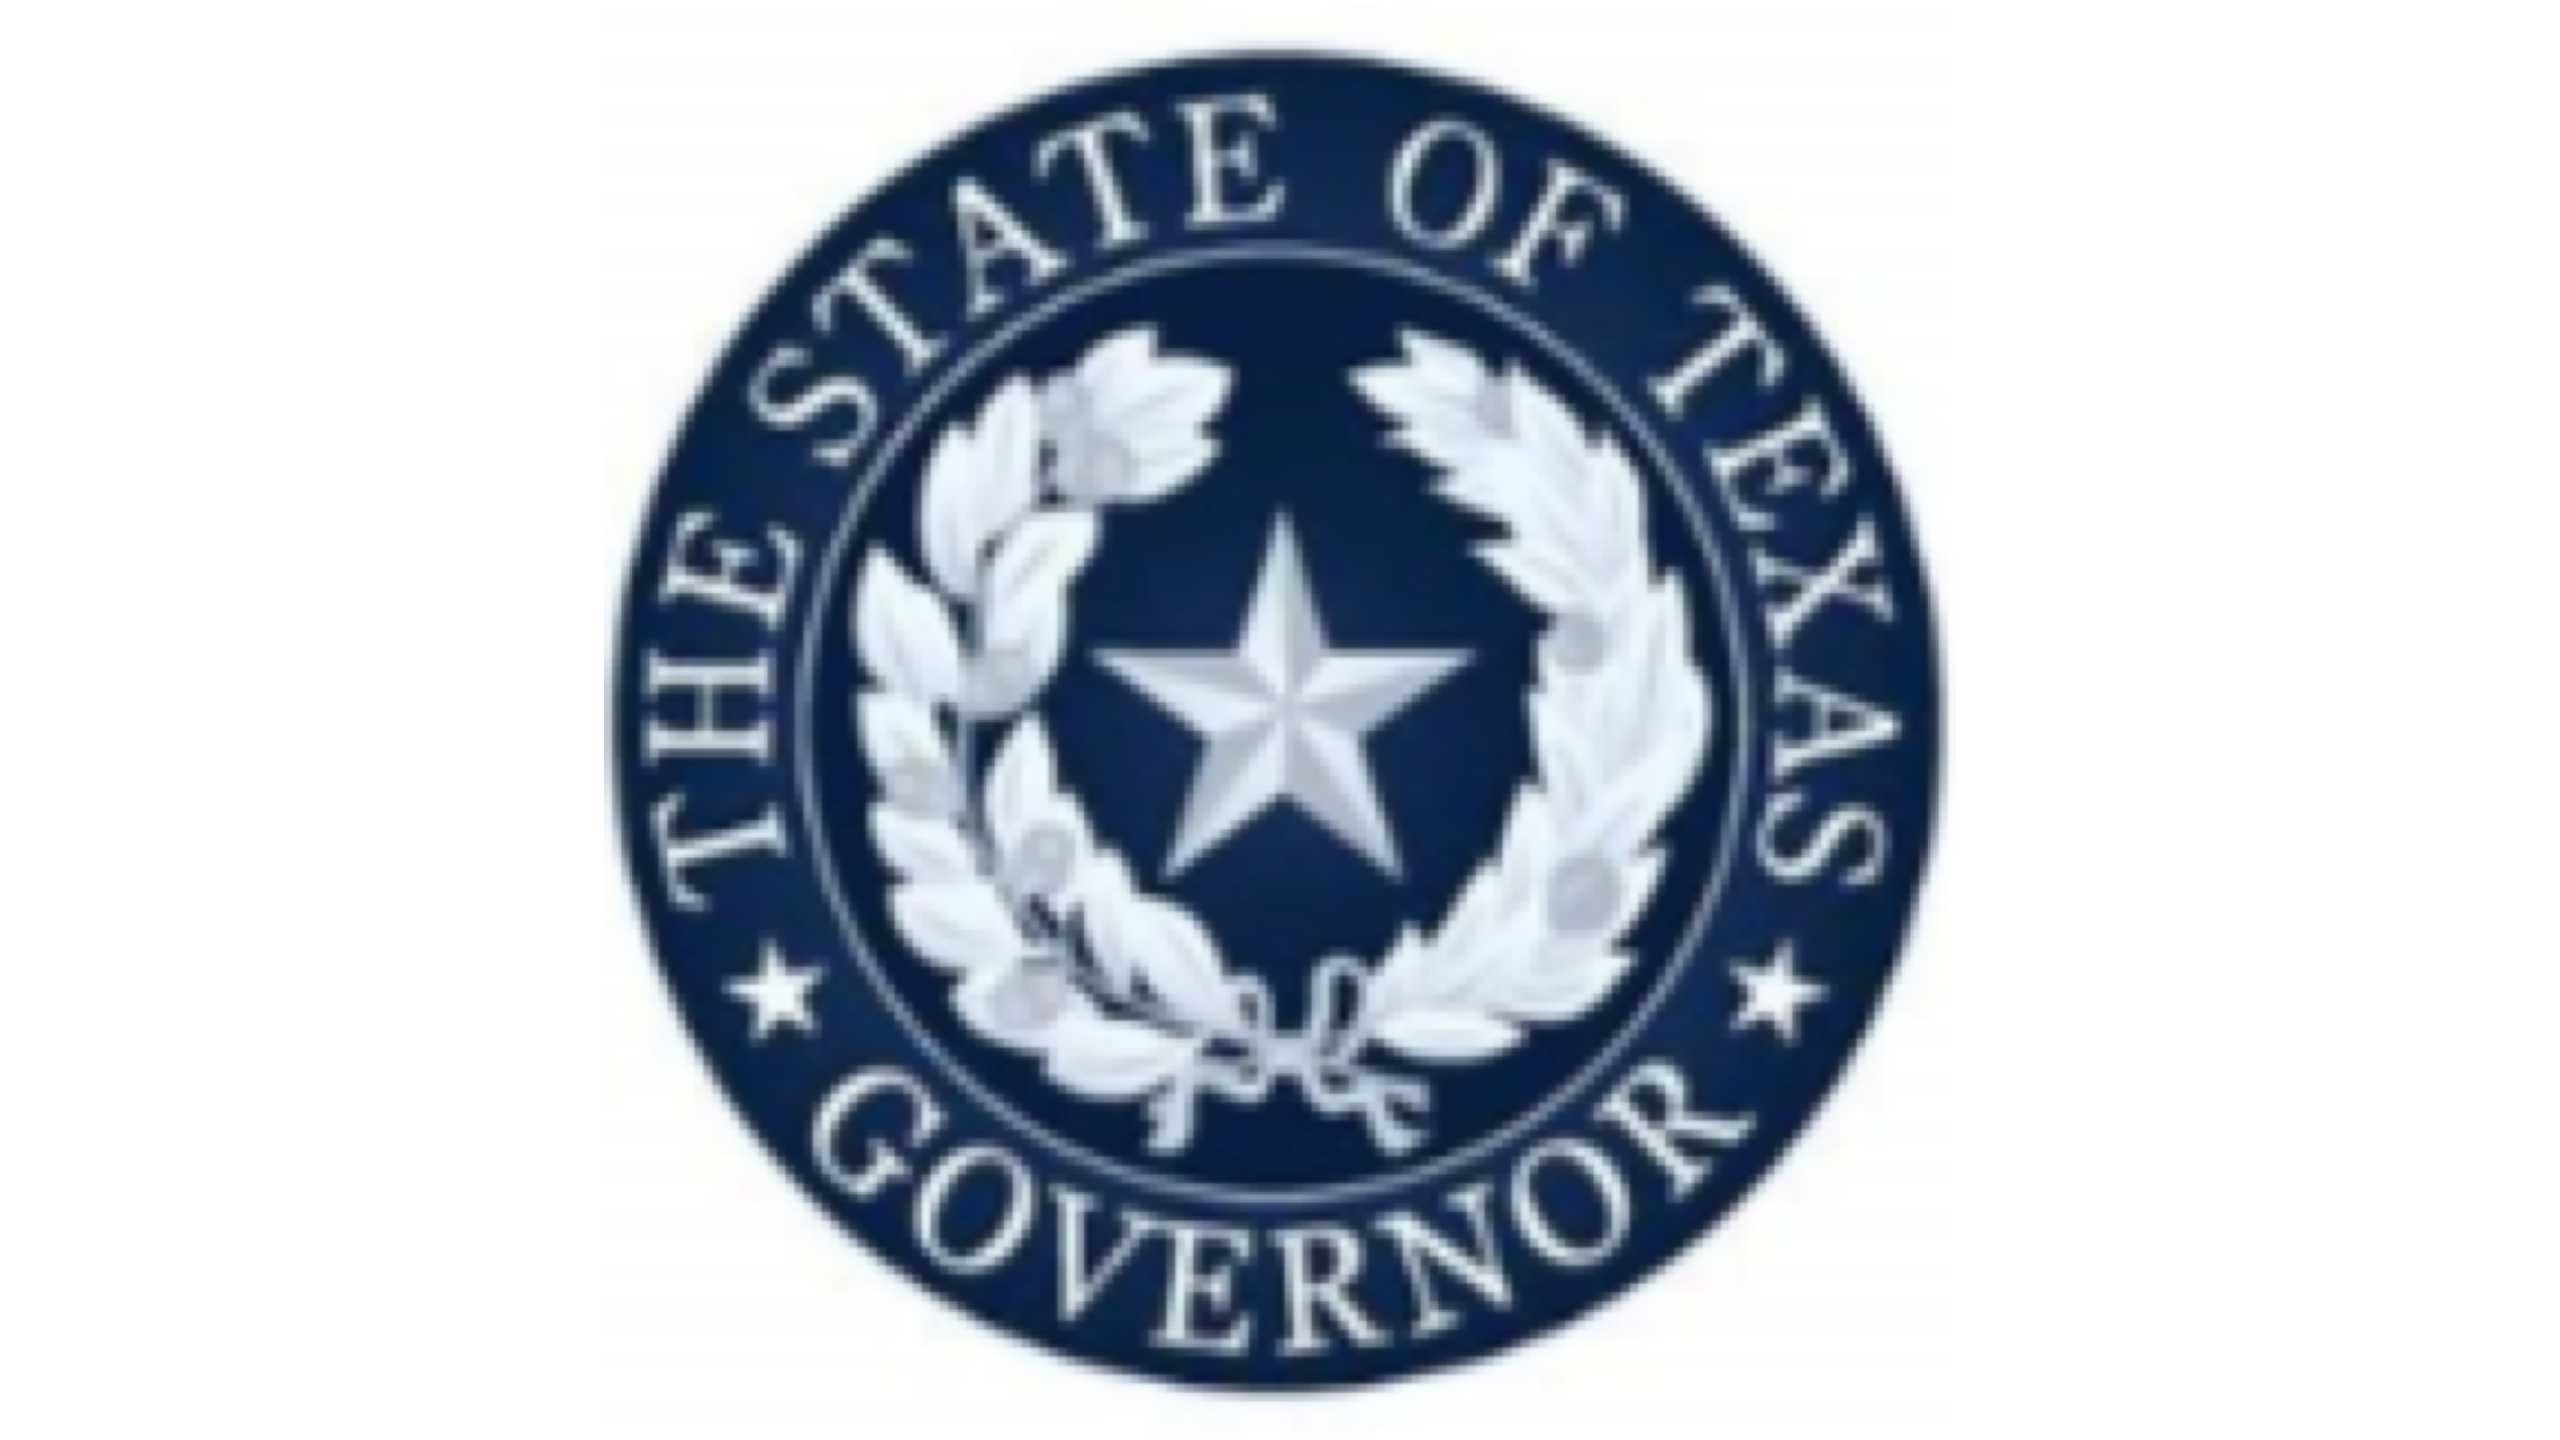 Governor's Seal on 16:9 white background